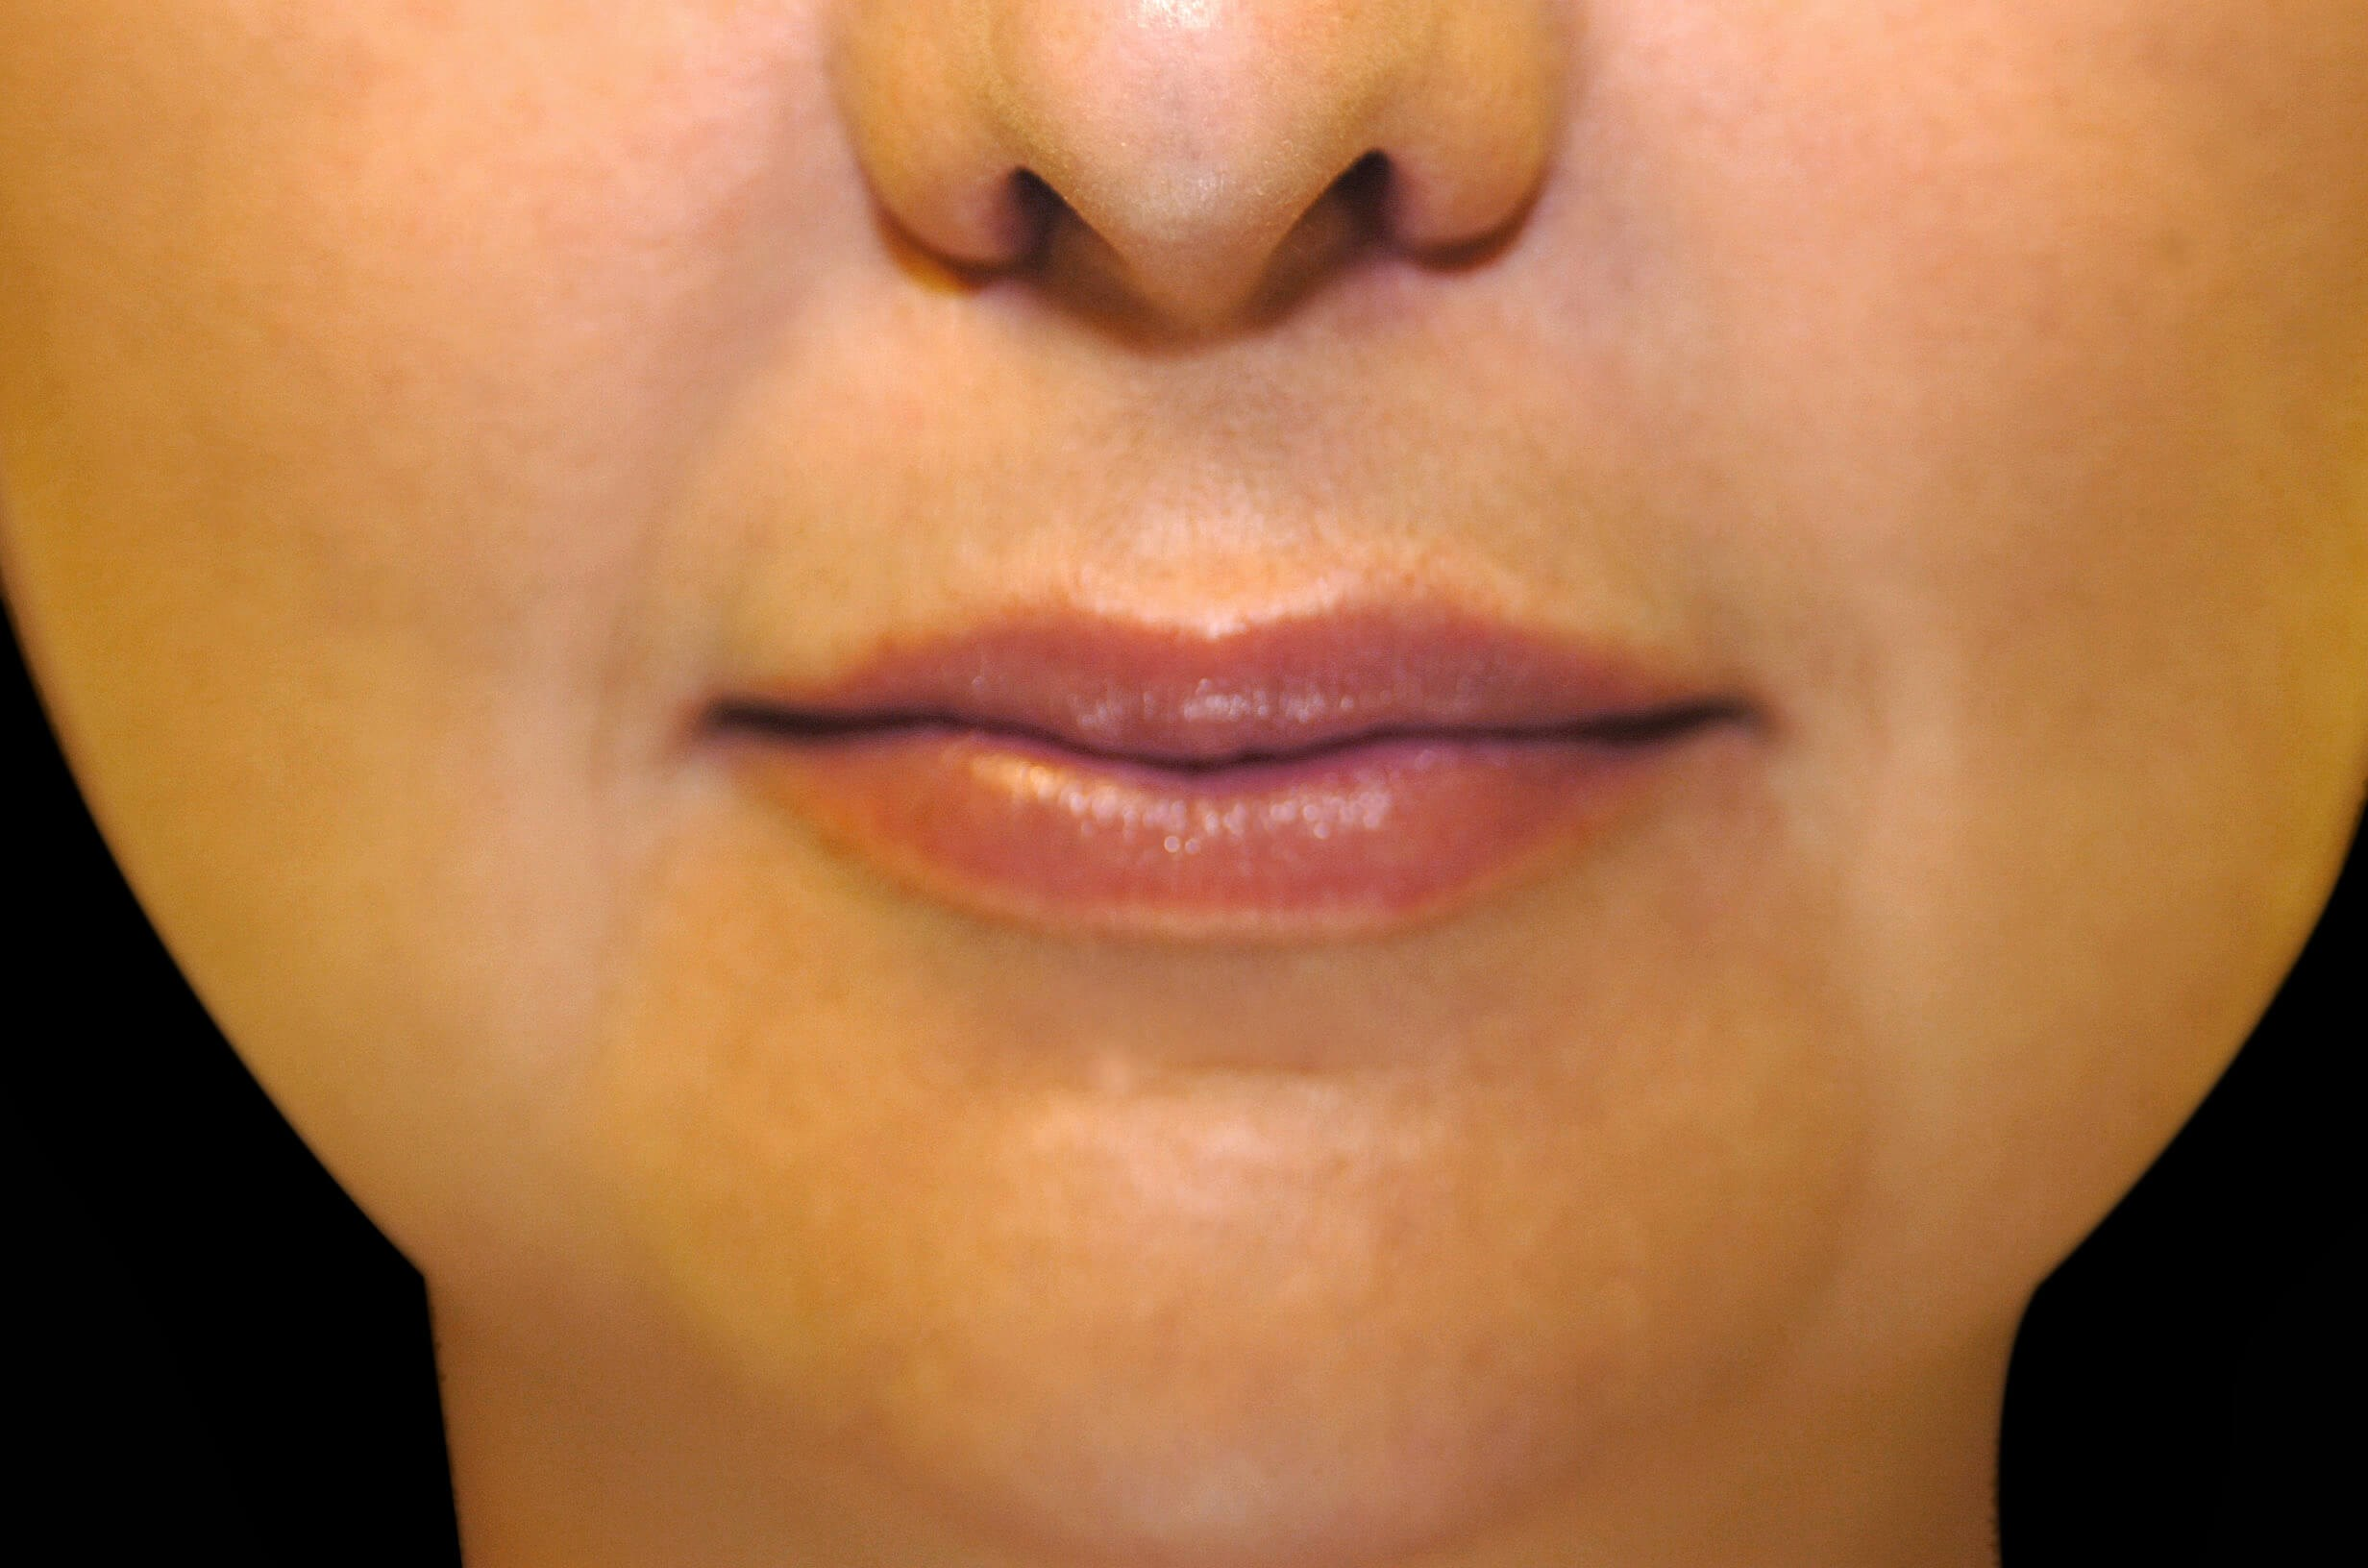 Restylane Lip Filler After Restylane Lip Filler